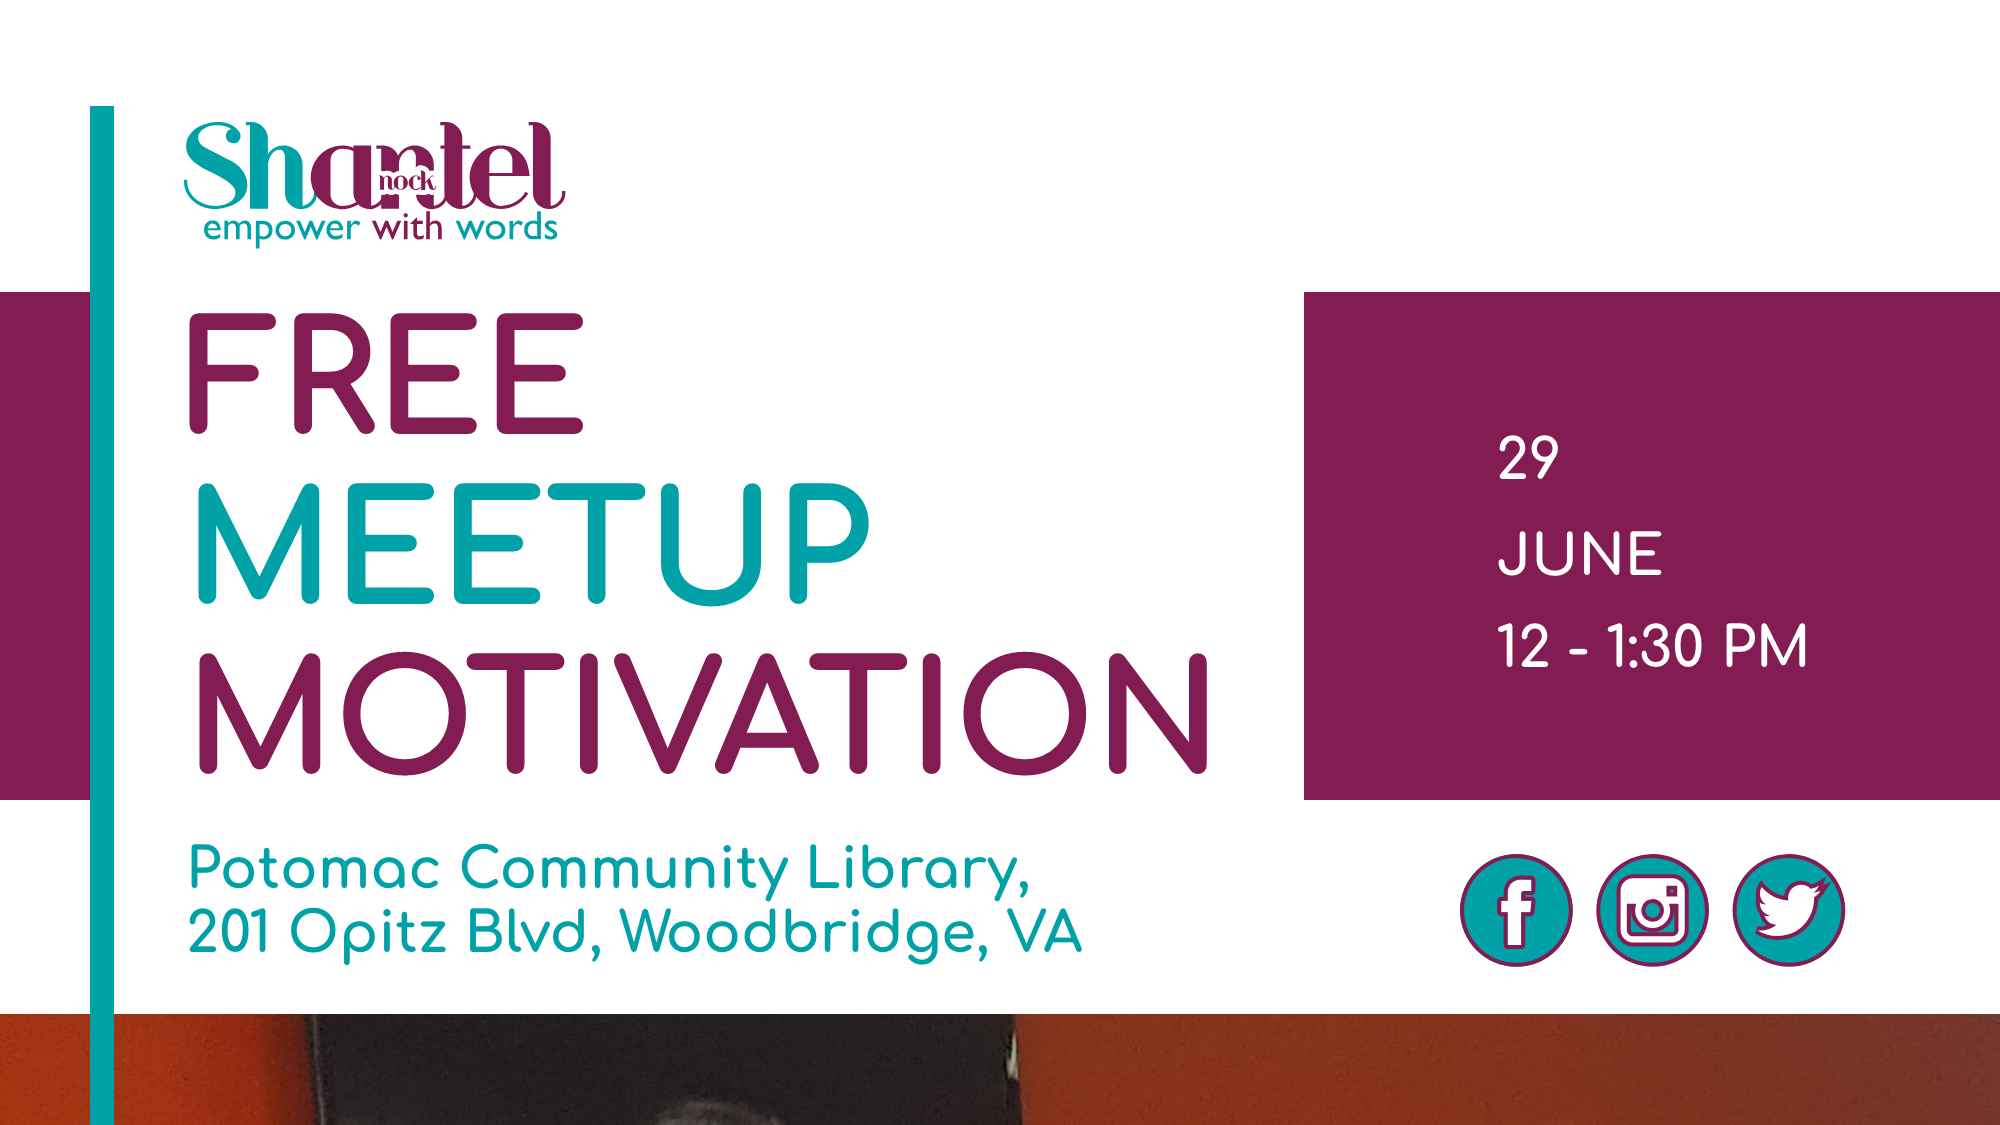 Shantel Nock - Empower With Words - Free Meetup Motivation